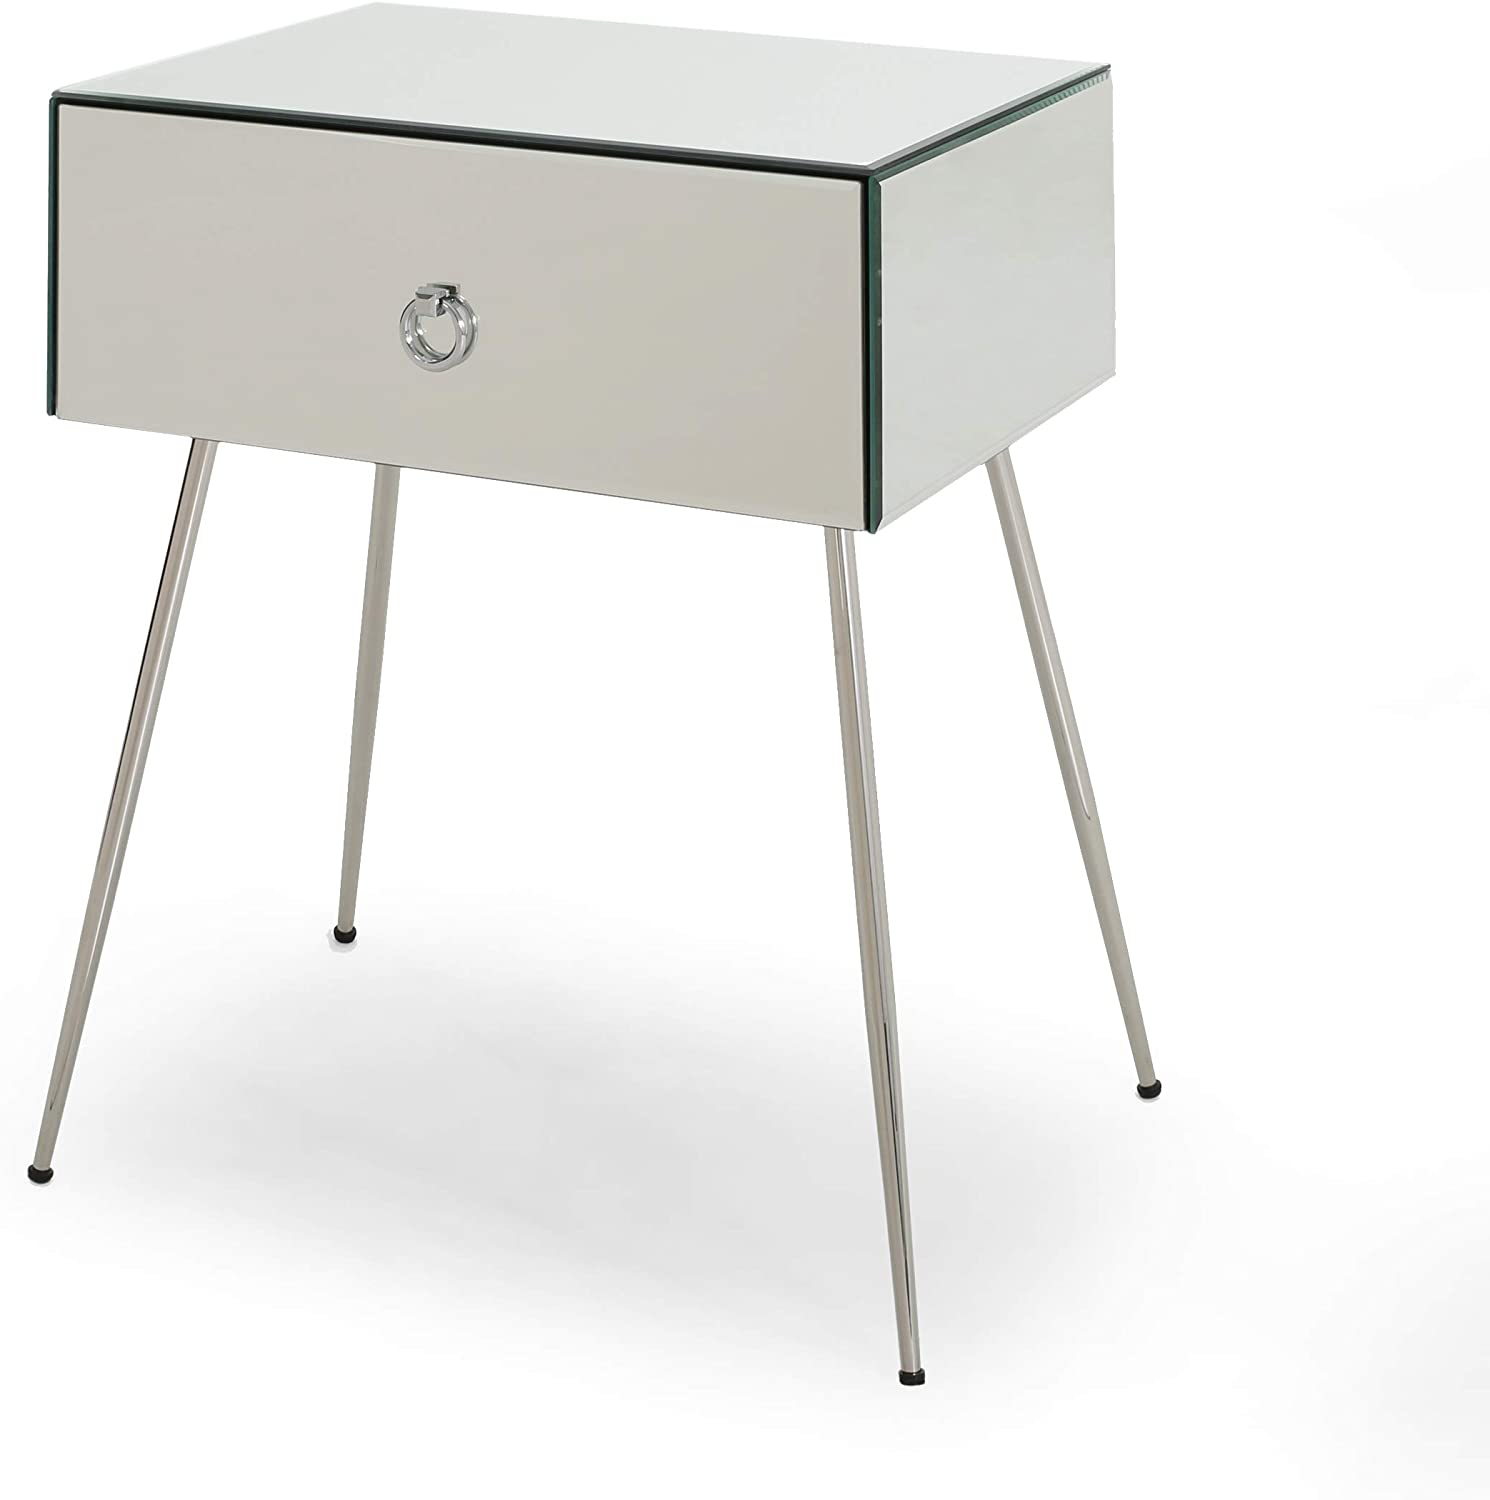 Christopher Knight Home Georgia Modern Accent Table, Mirror, Silver